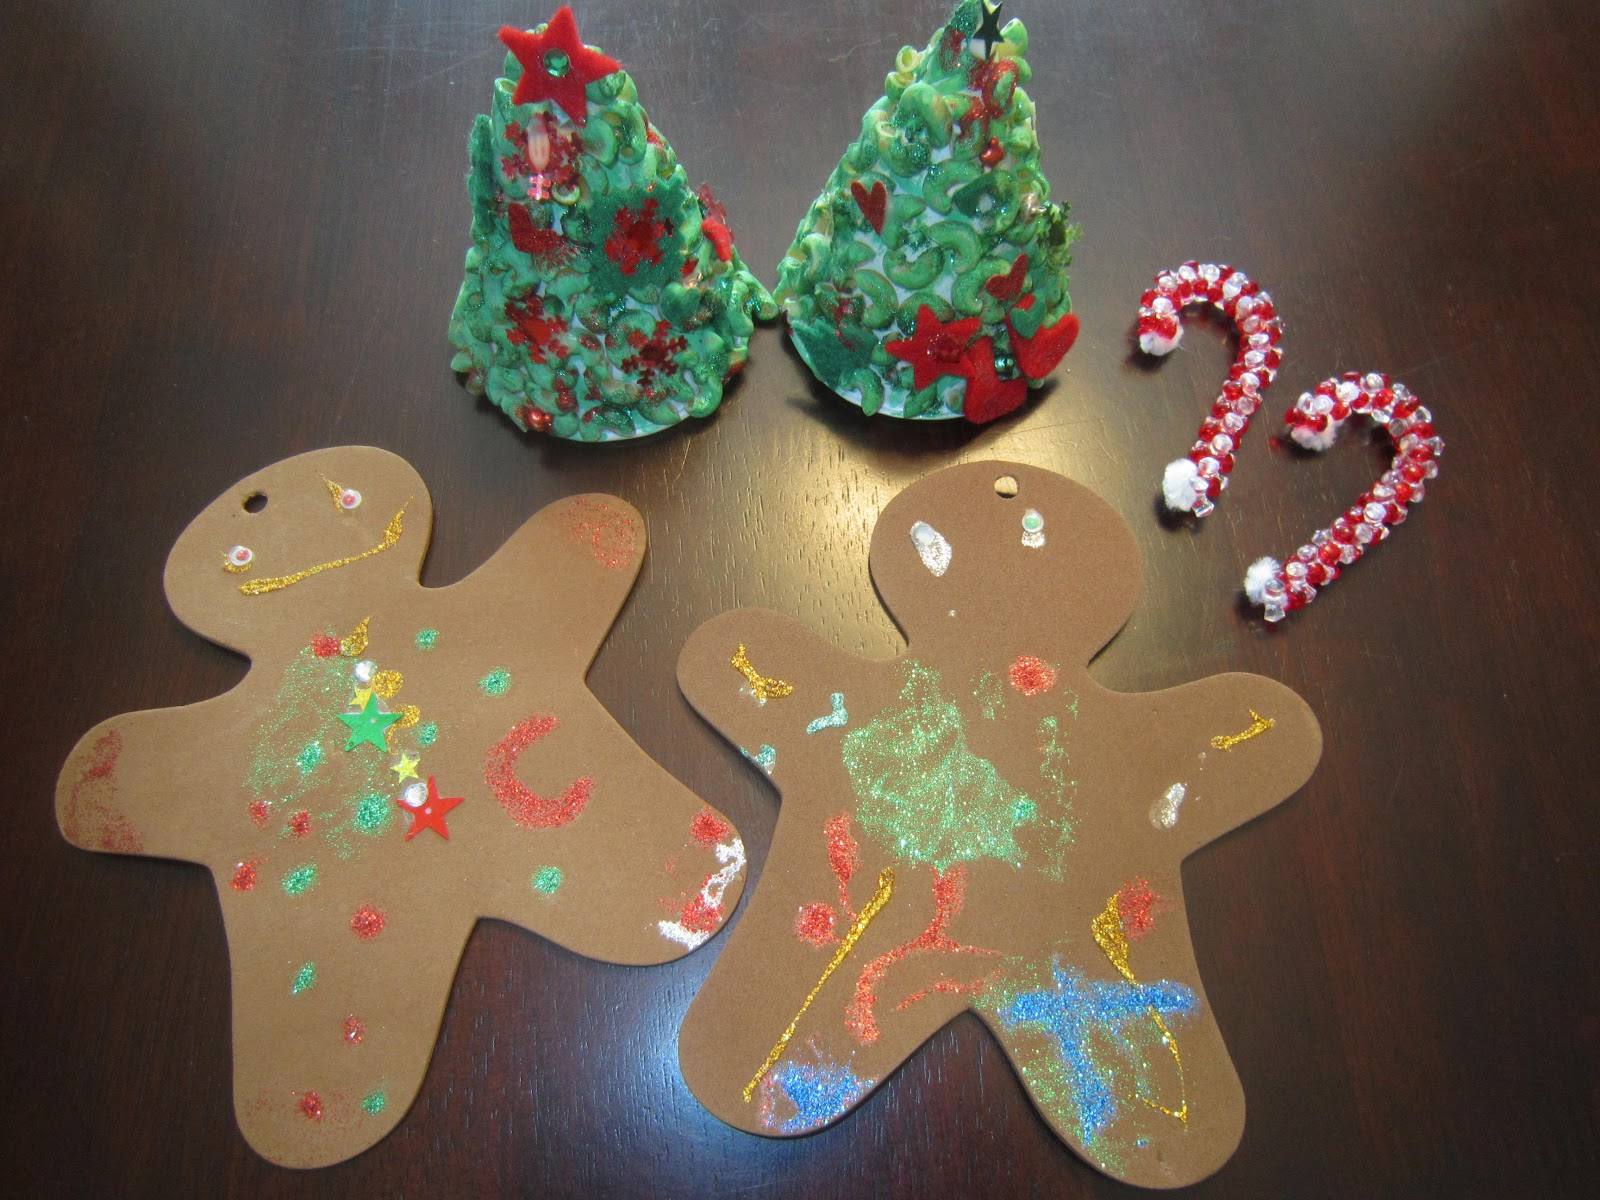 Kids' Christmas crafts, Christmas tree ornaments, Christmas decor